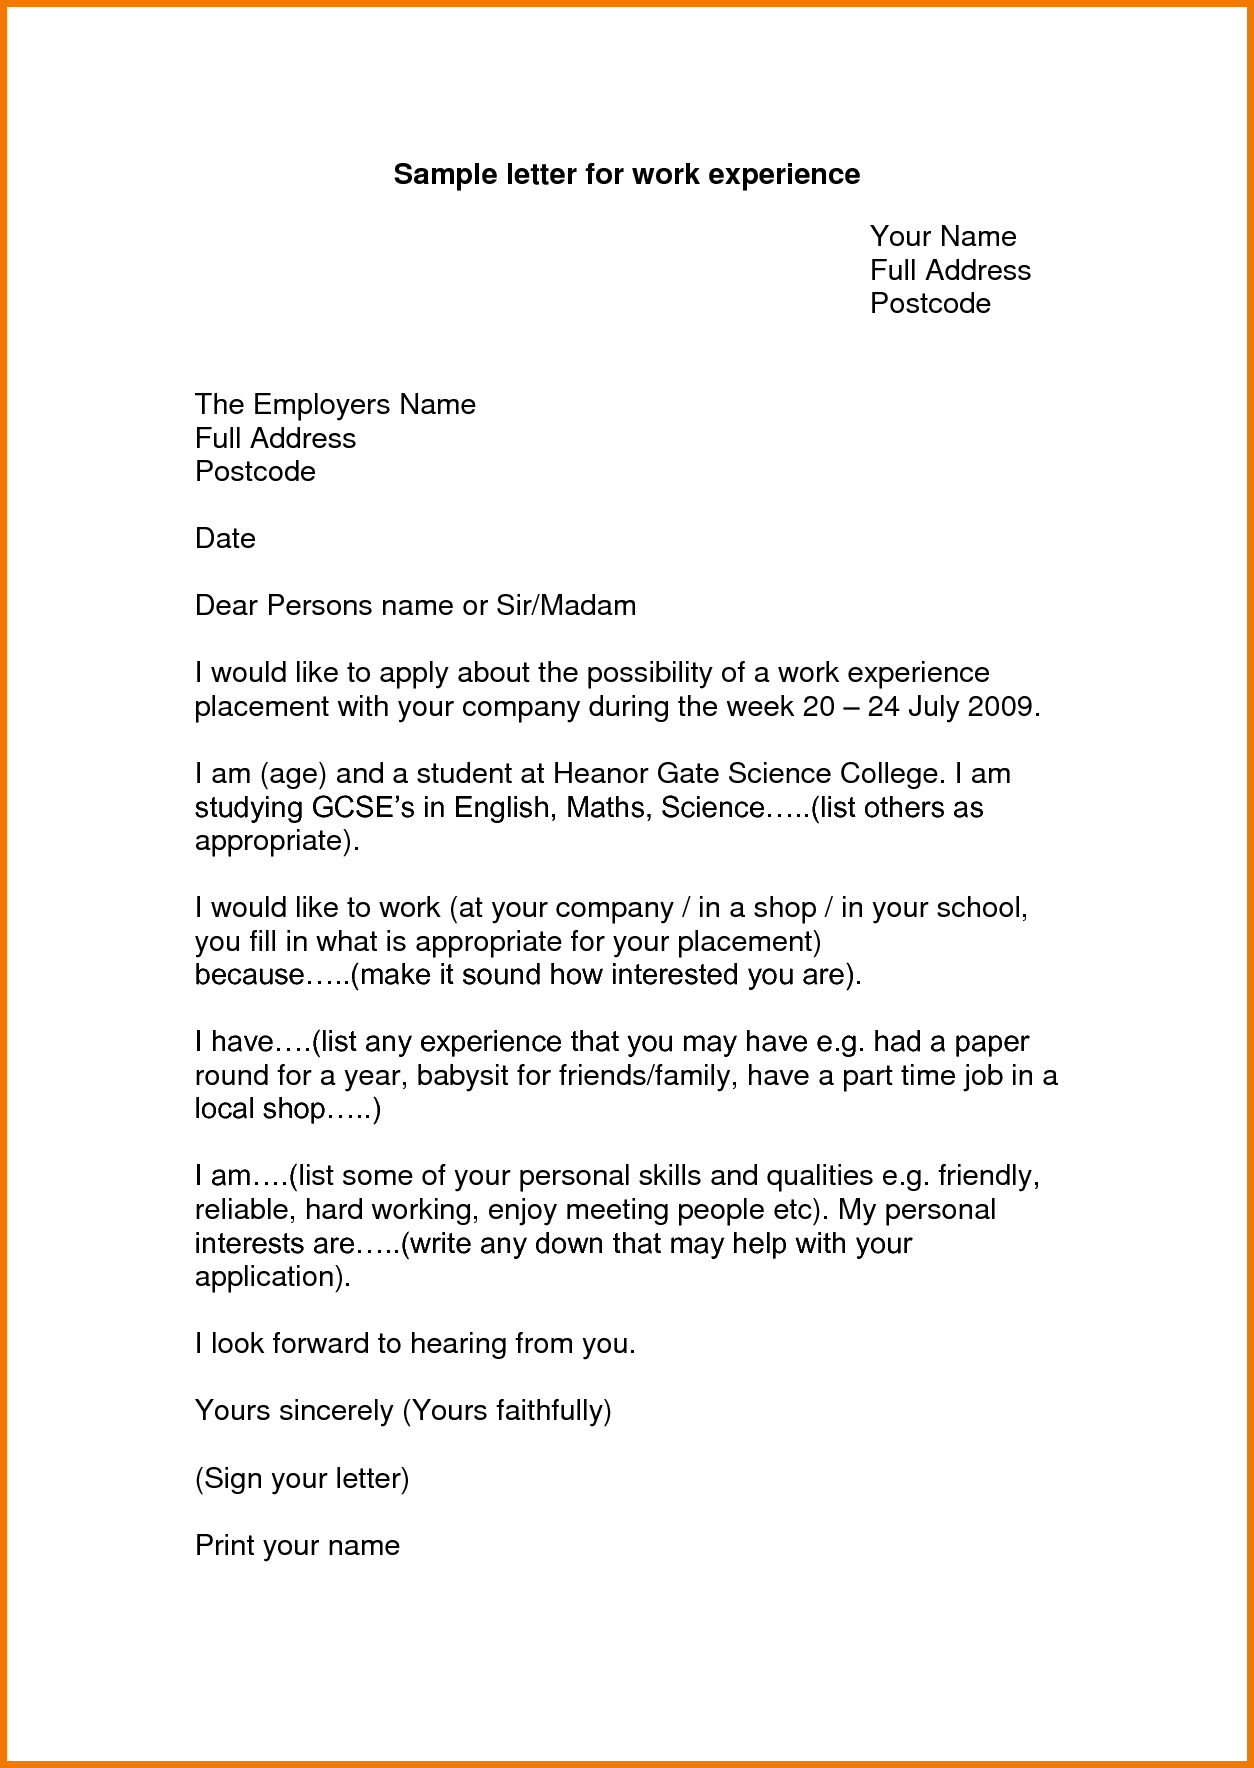 Experience letter format for work appeal letters sample experience letter format for work appeal letters sample certificate template free word excel pdf documents download yelopaper